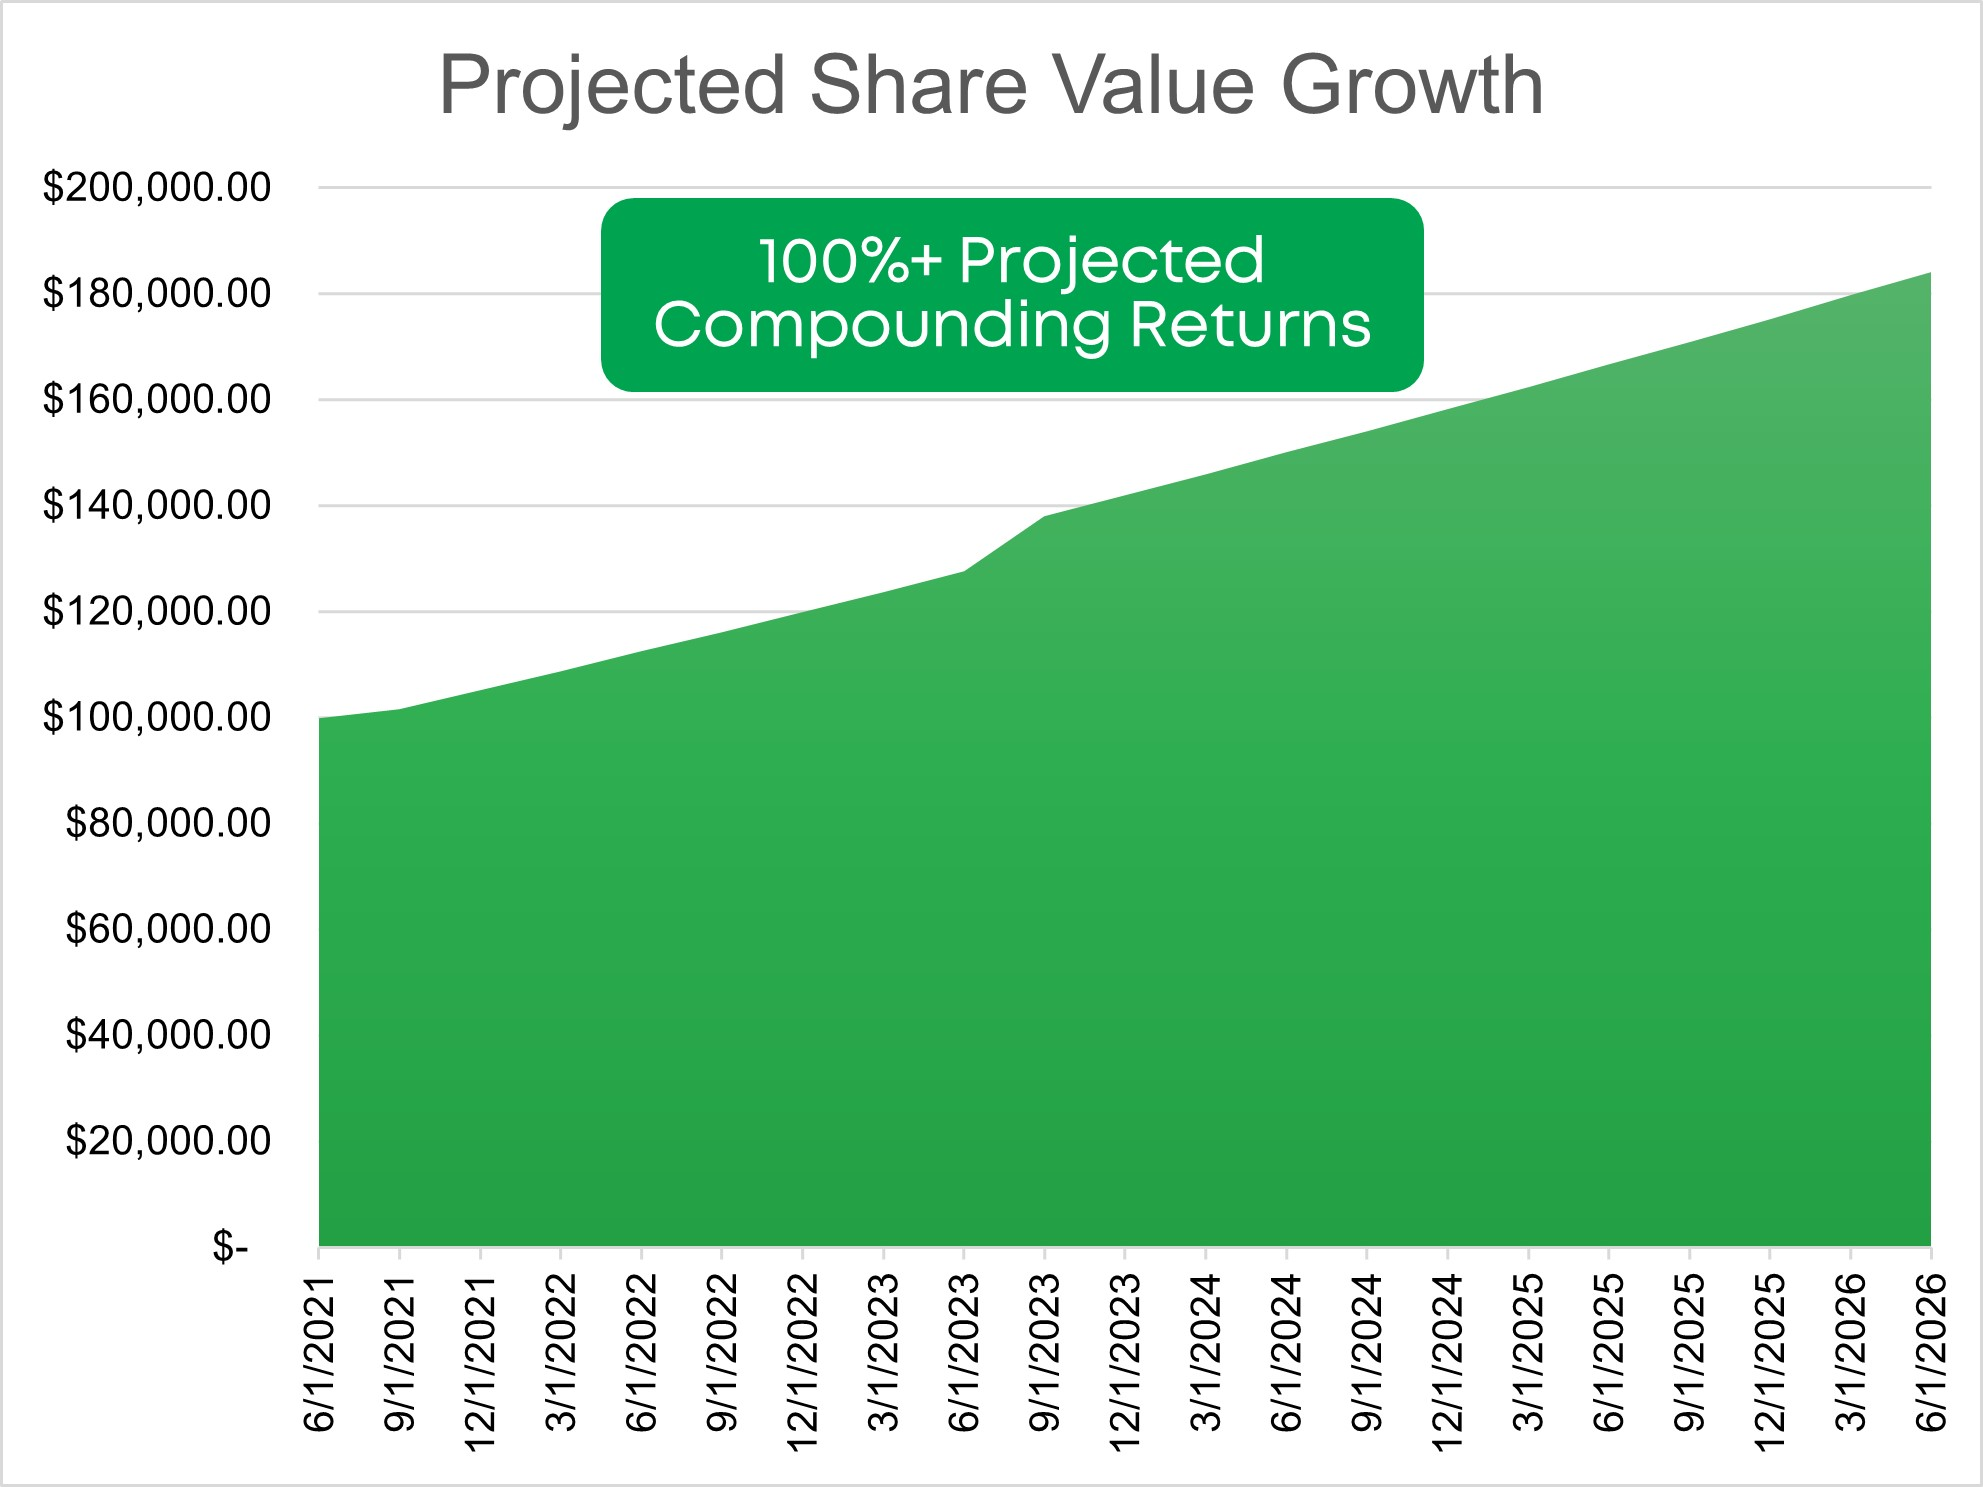 Projected Share Value